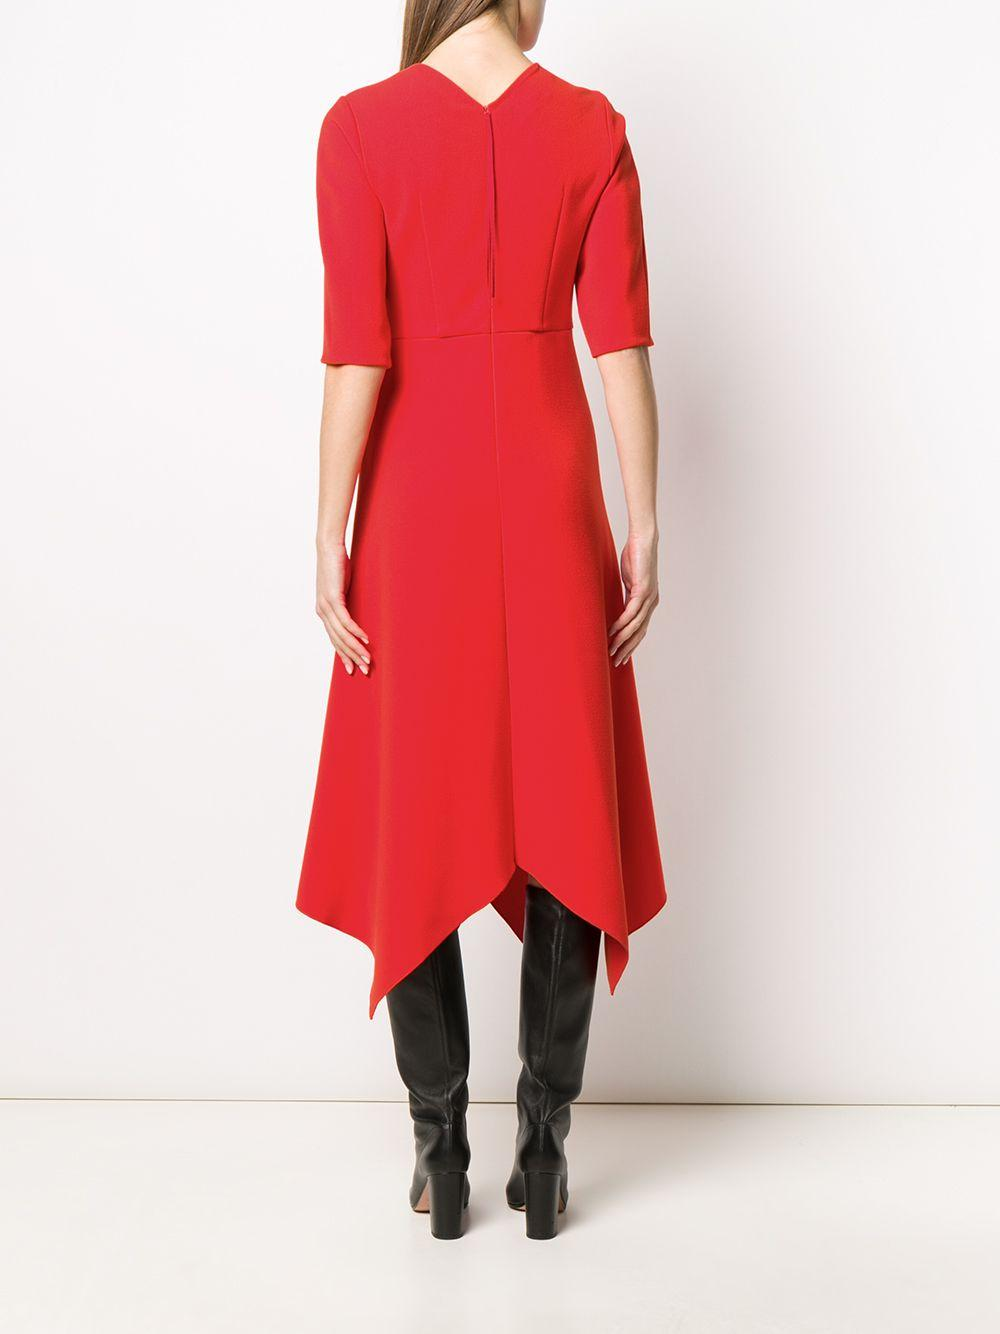 Robe Sophisticated Perfection Synthétique Dorothee Schumacher en coloris Rouge